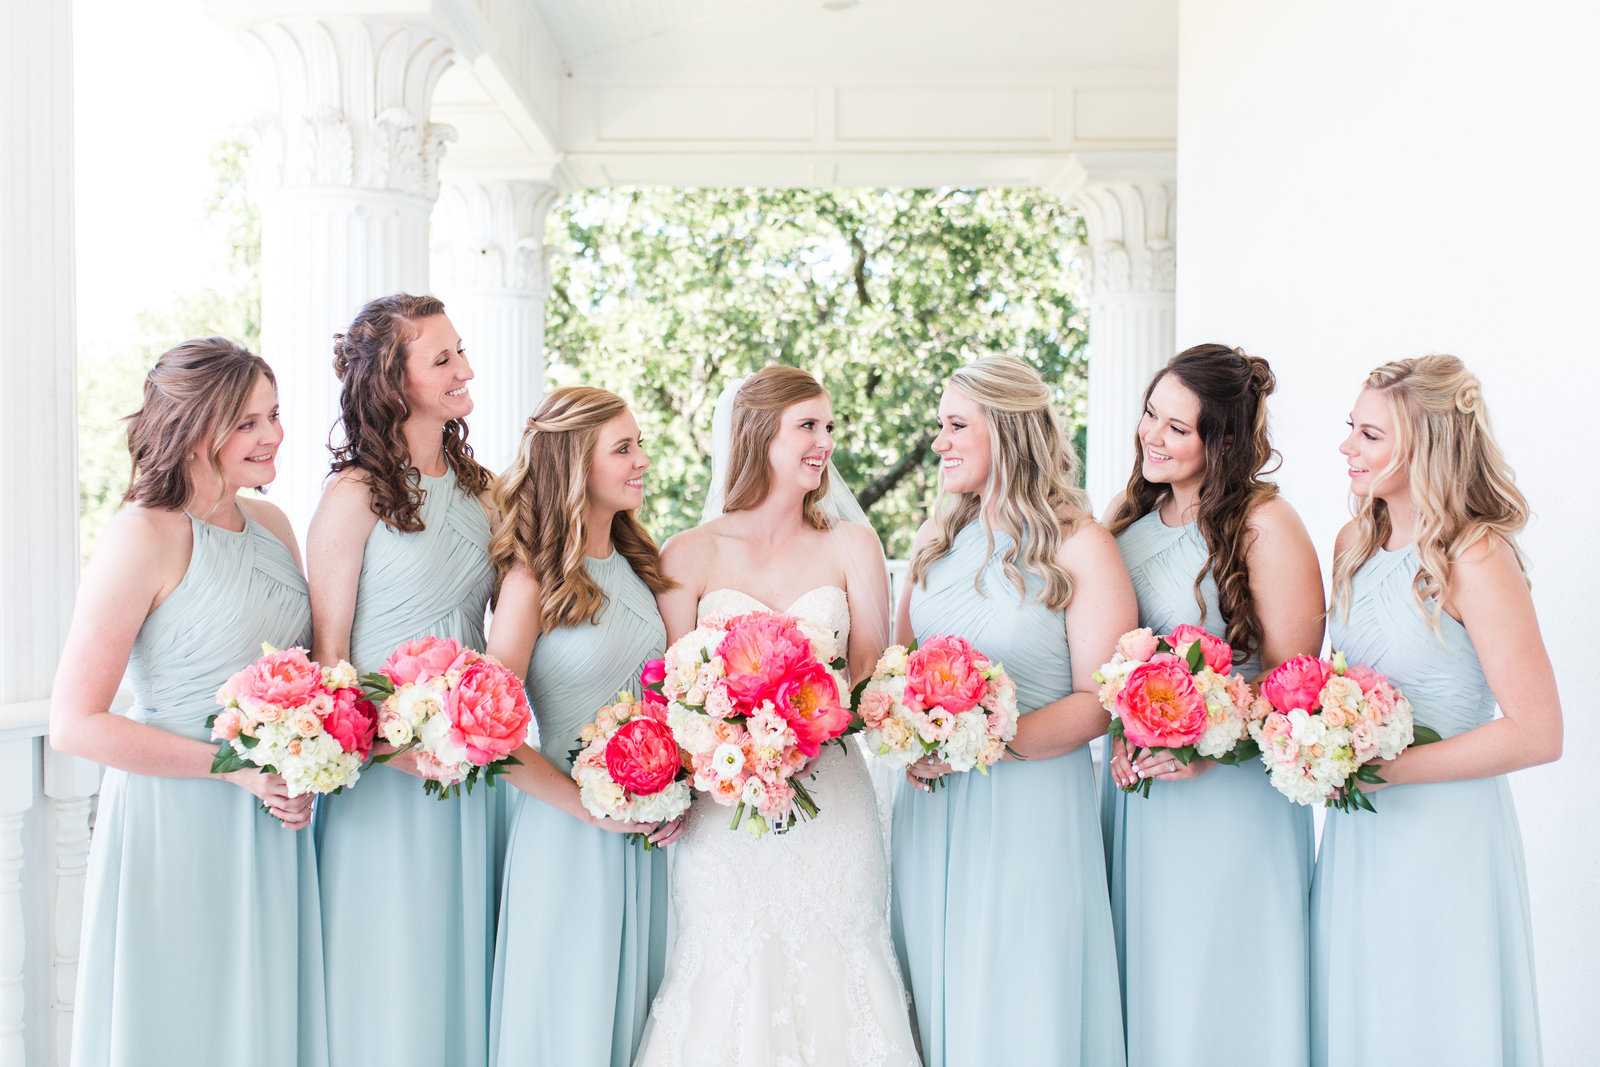 Dallas Wedding Photography | Sami Kathryn Photography | Contact